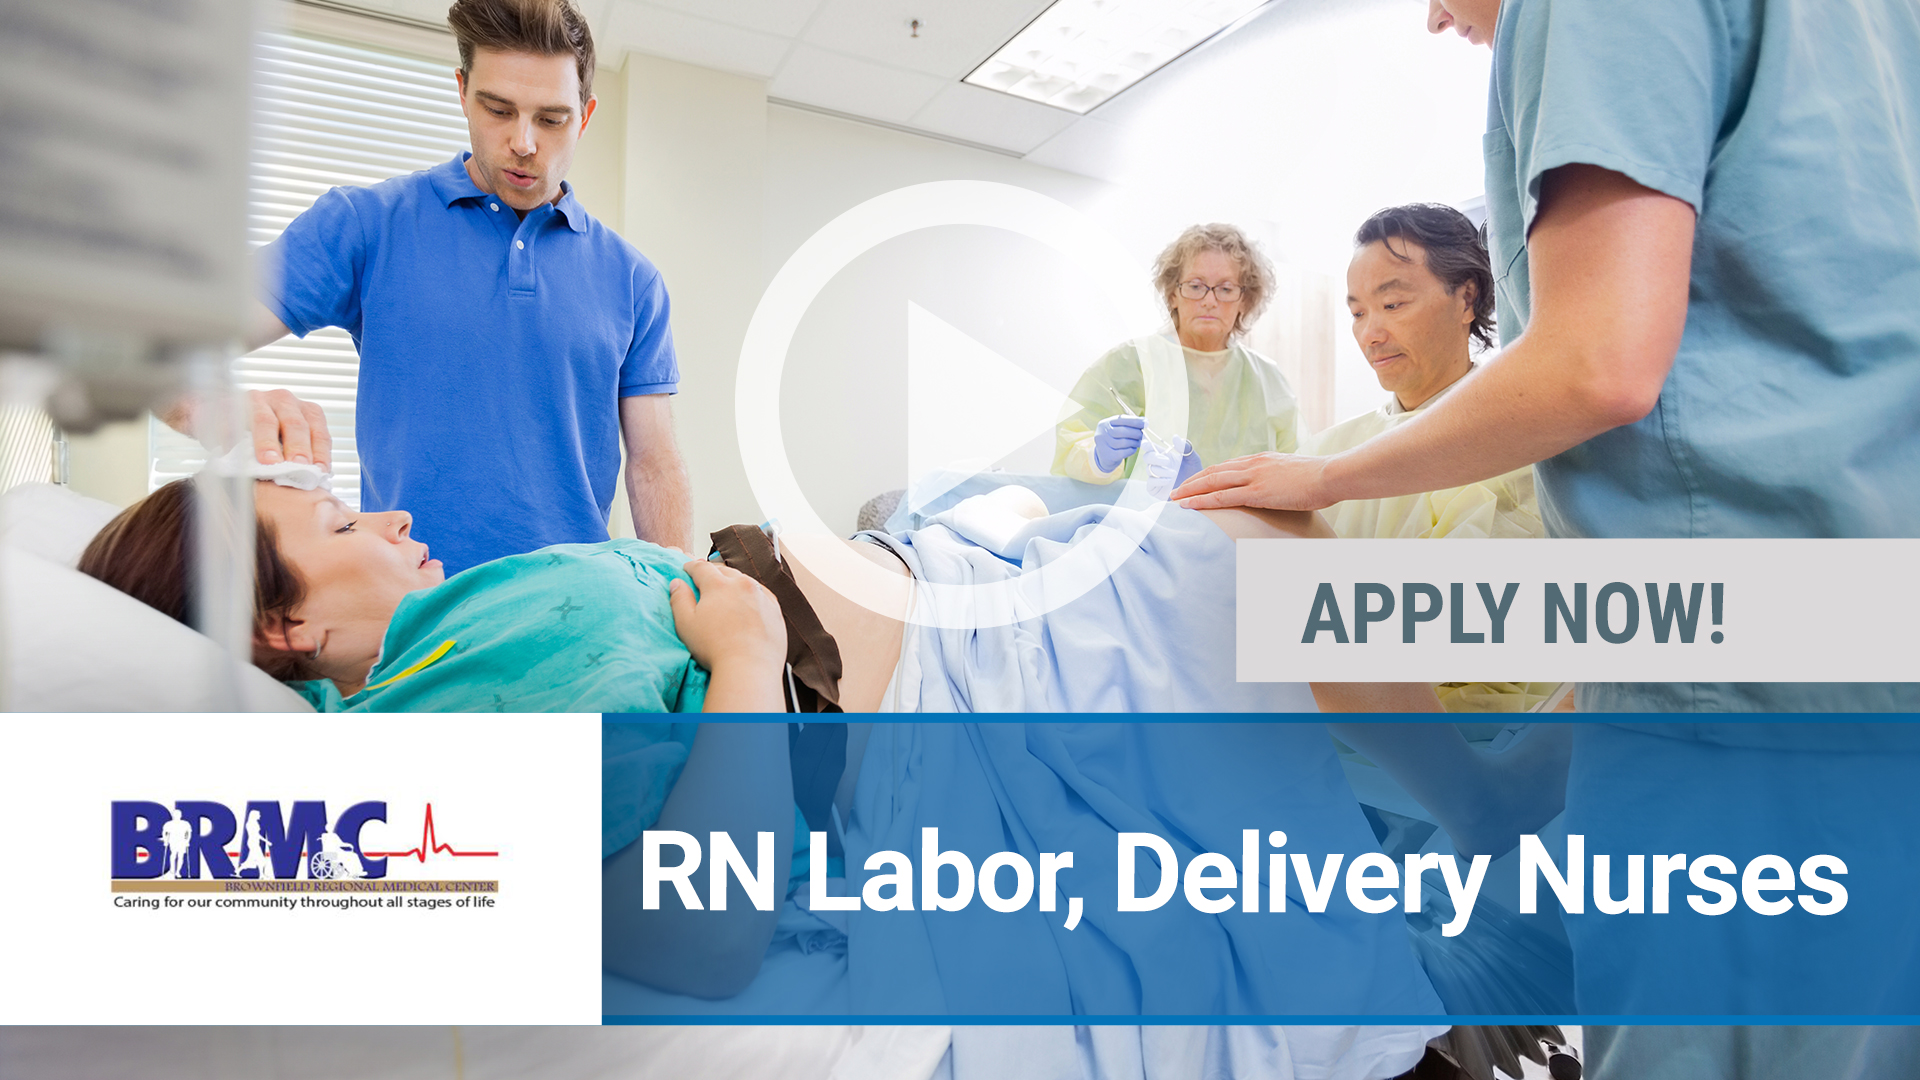 Watch our careers video for available job opening RN Labor, Delivery Nurses in Lubbock, TX